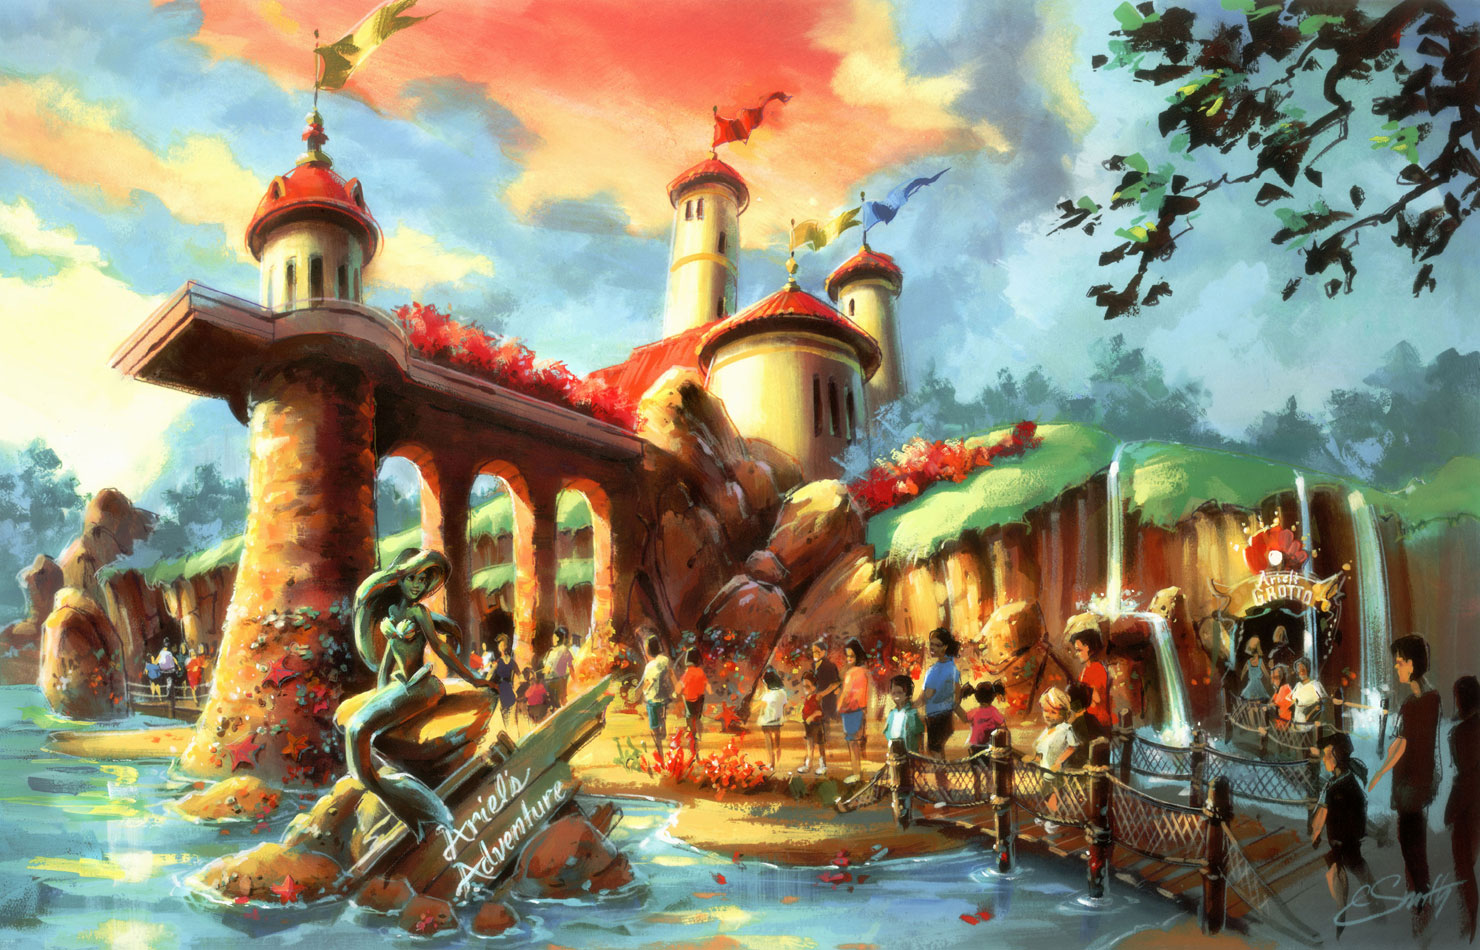 Disneyland Ariels Adventure Fantasy Painting Paintings Mermaid Mermaids Art Wallpaper